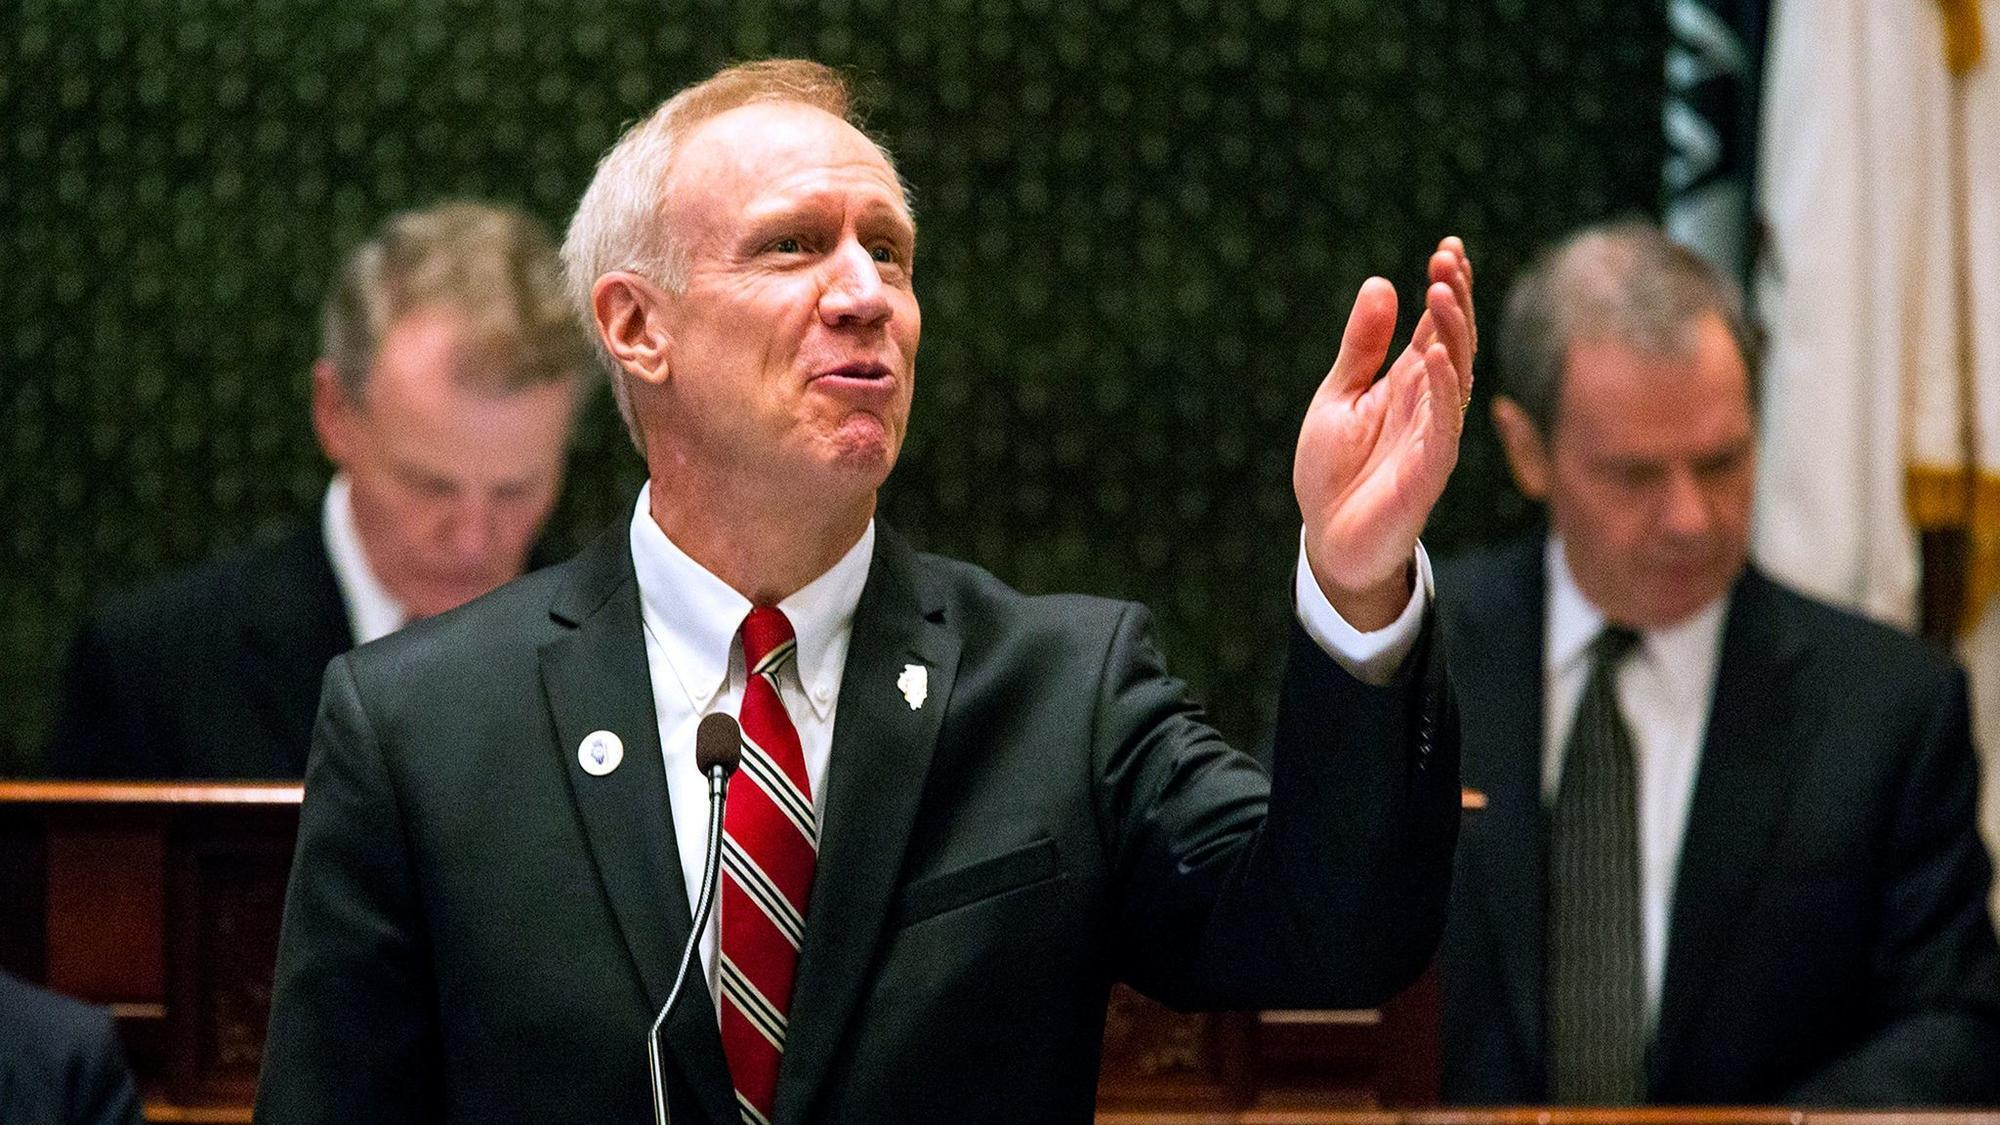 ct-perspec-zorn-rauner-abortion-madigan-